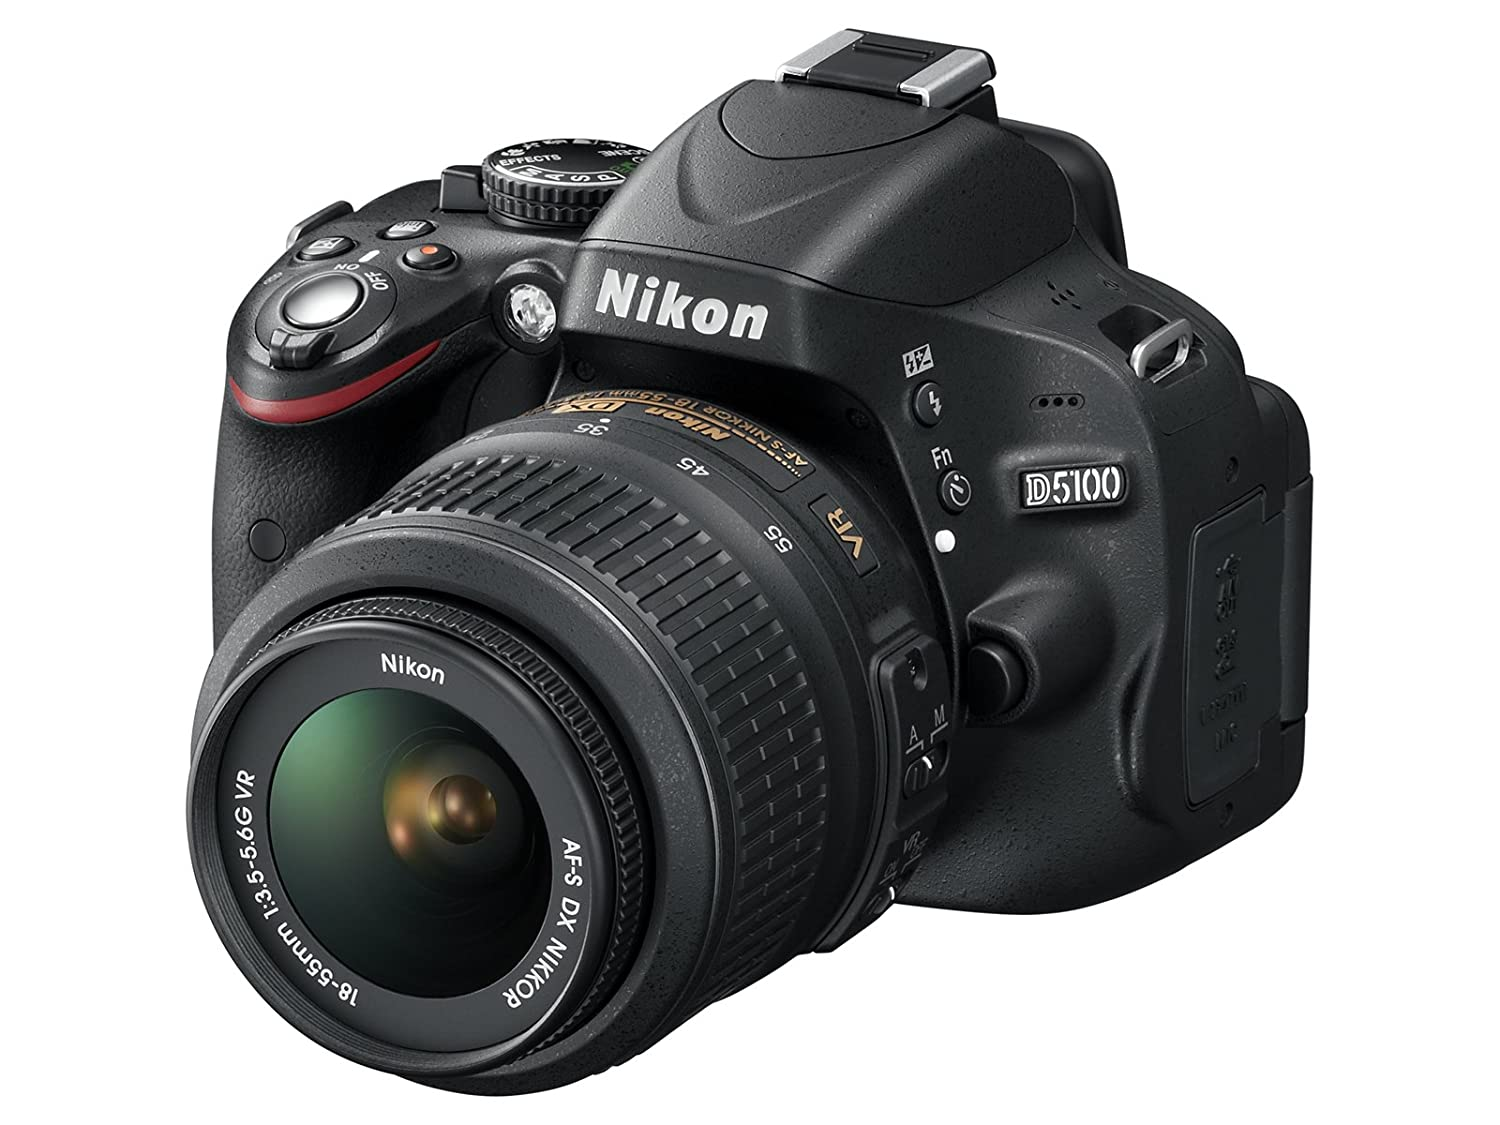 Camera Old Dslr Camera For Sale amazon com nikon d5100 dslr camera with 18 55mm f3 5 6 auto focus s nikkor zoom lens old model photo